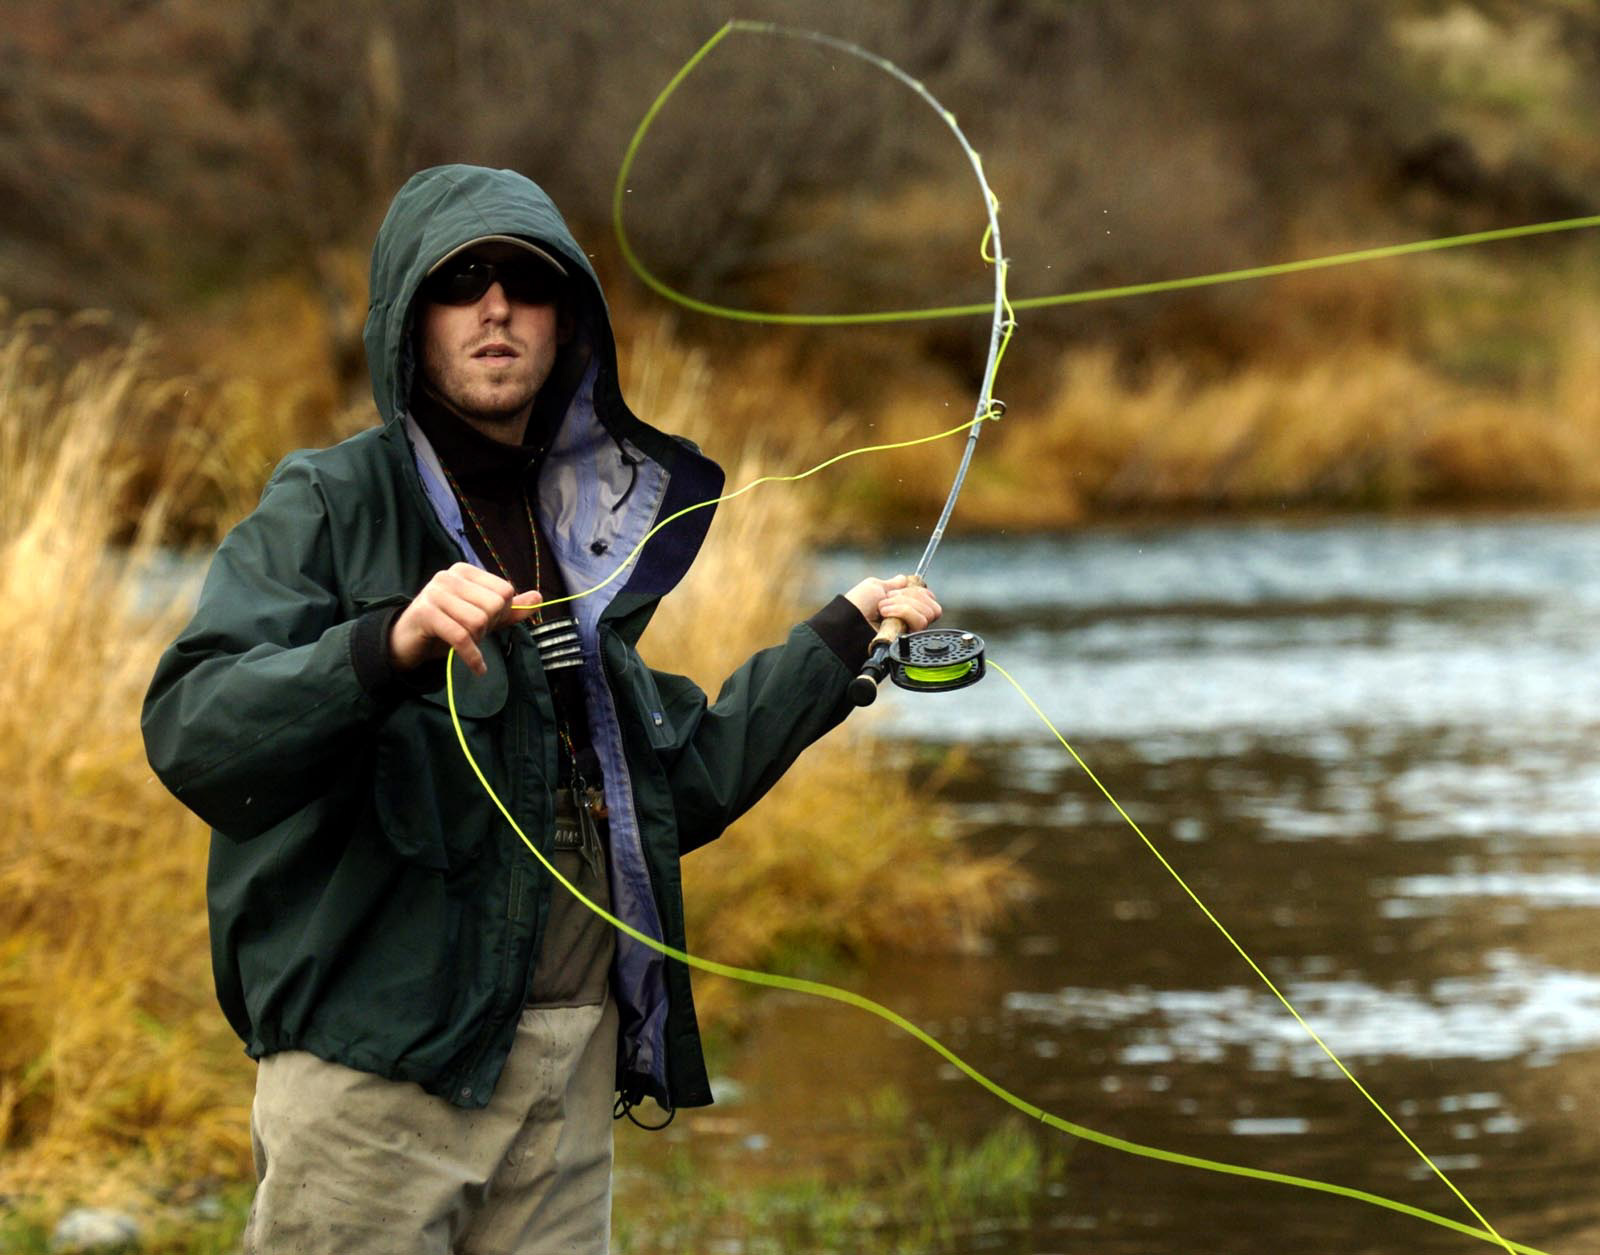 Fly fishing guide Nate casting on the lower Deschutes River.